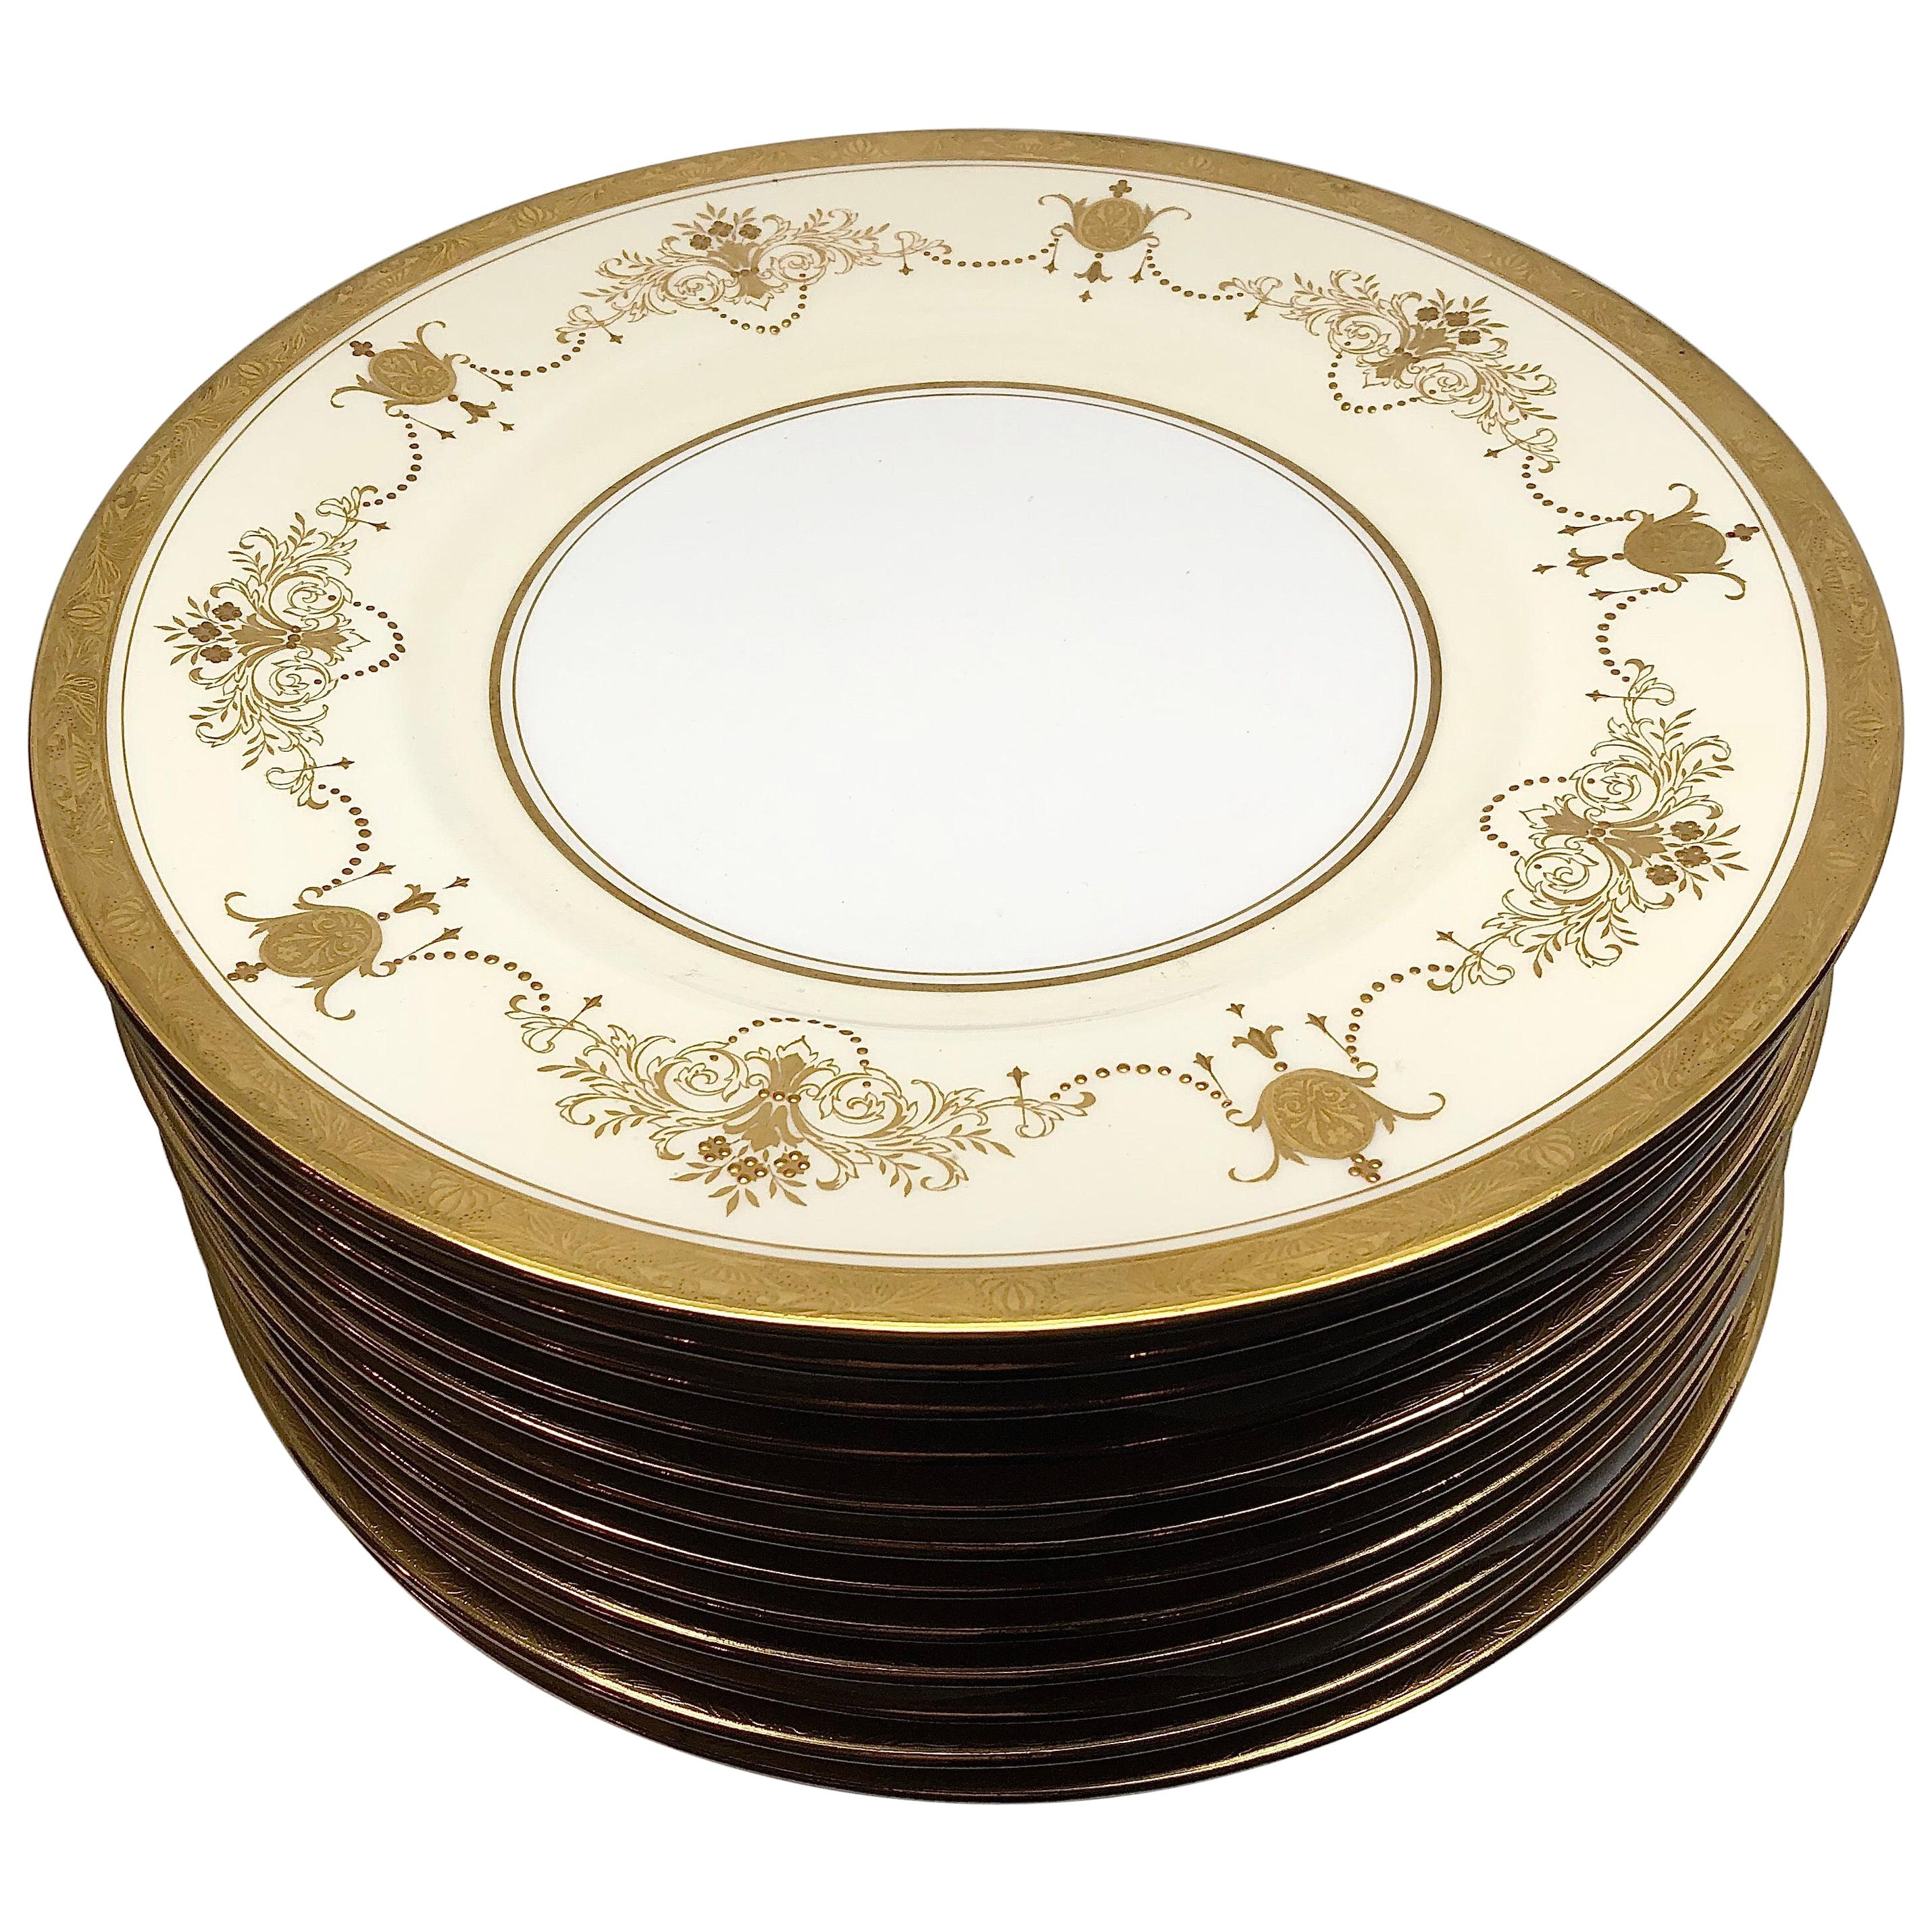 Set of 12 Minton Dinner Plates Decorated with Ribbons of Raised Gilded Jeweling